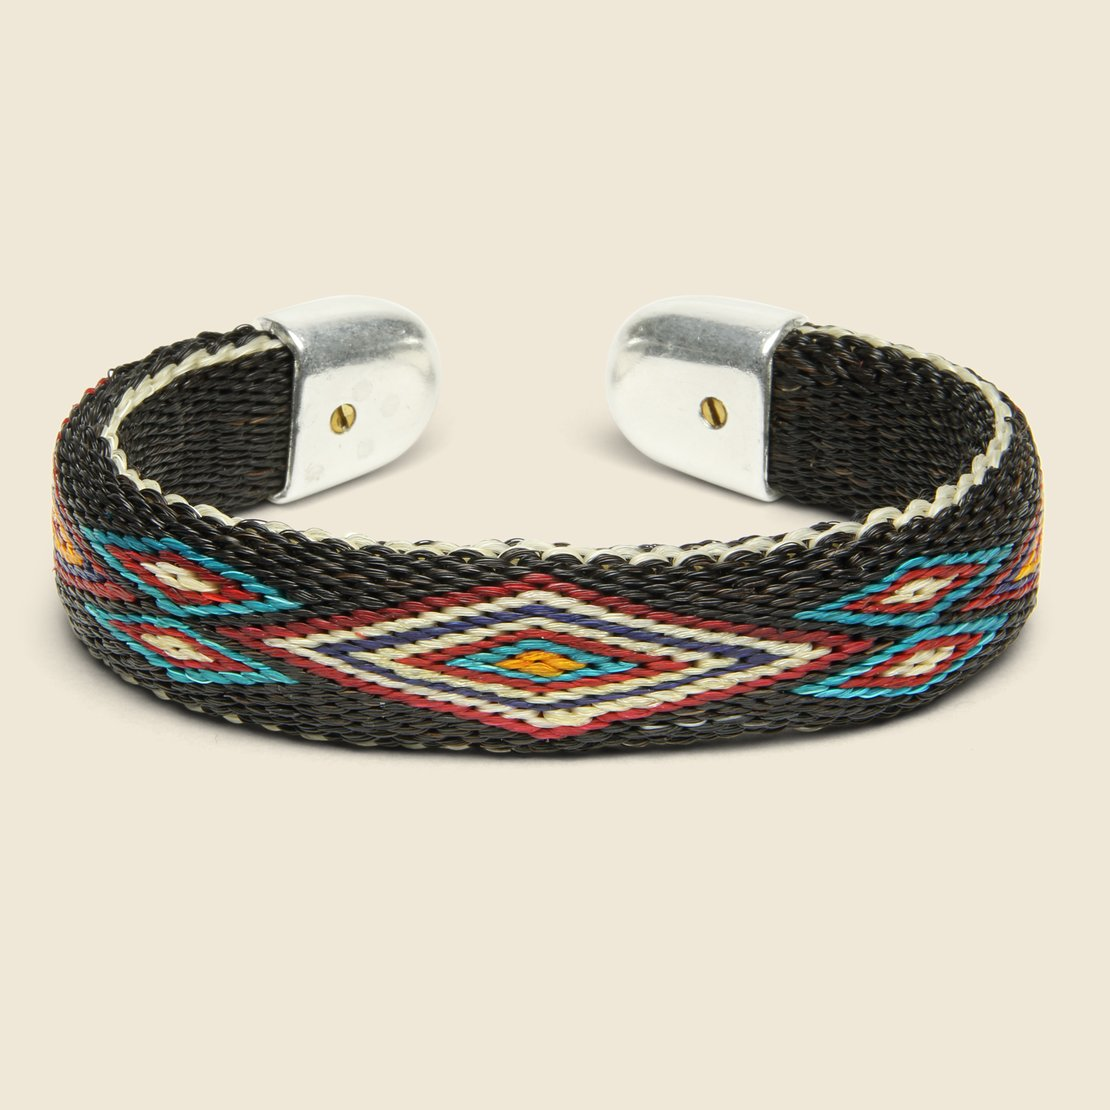 Chamula Bendable Horsehair Bracelet - Black/Multi